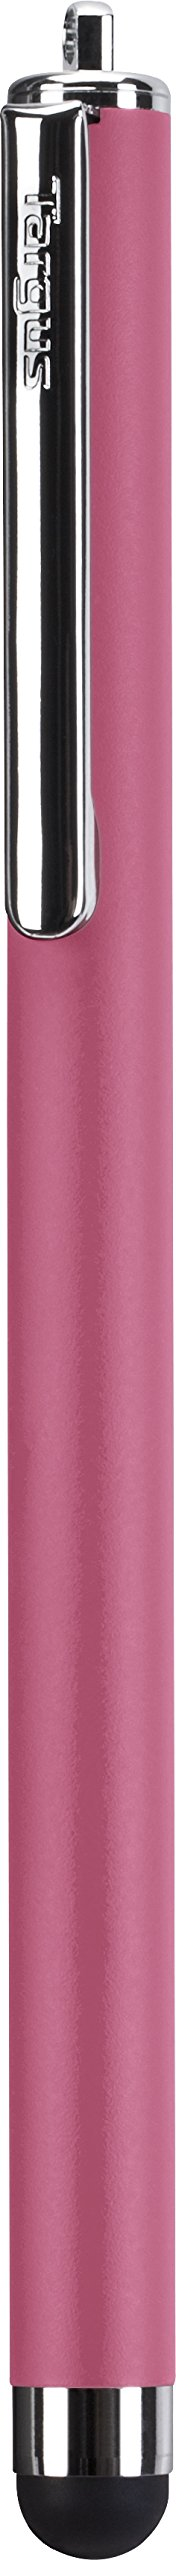 Targus Stylus for iPad, iPhone, iPod, Samsung Tablets, Smartphones and Other Touchscreen Devices, Pink (AMM0107US)